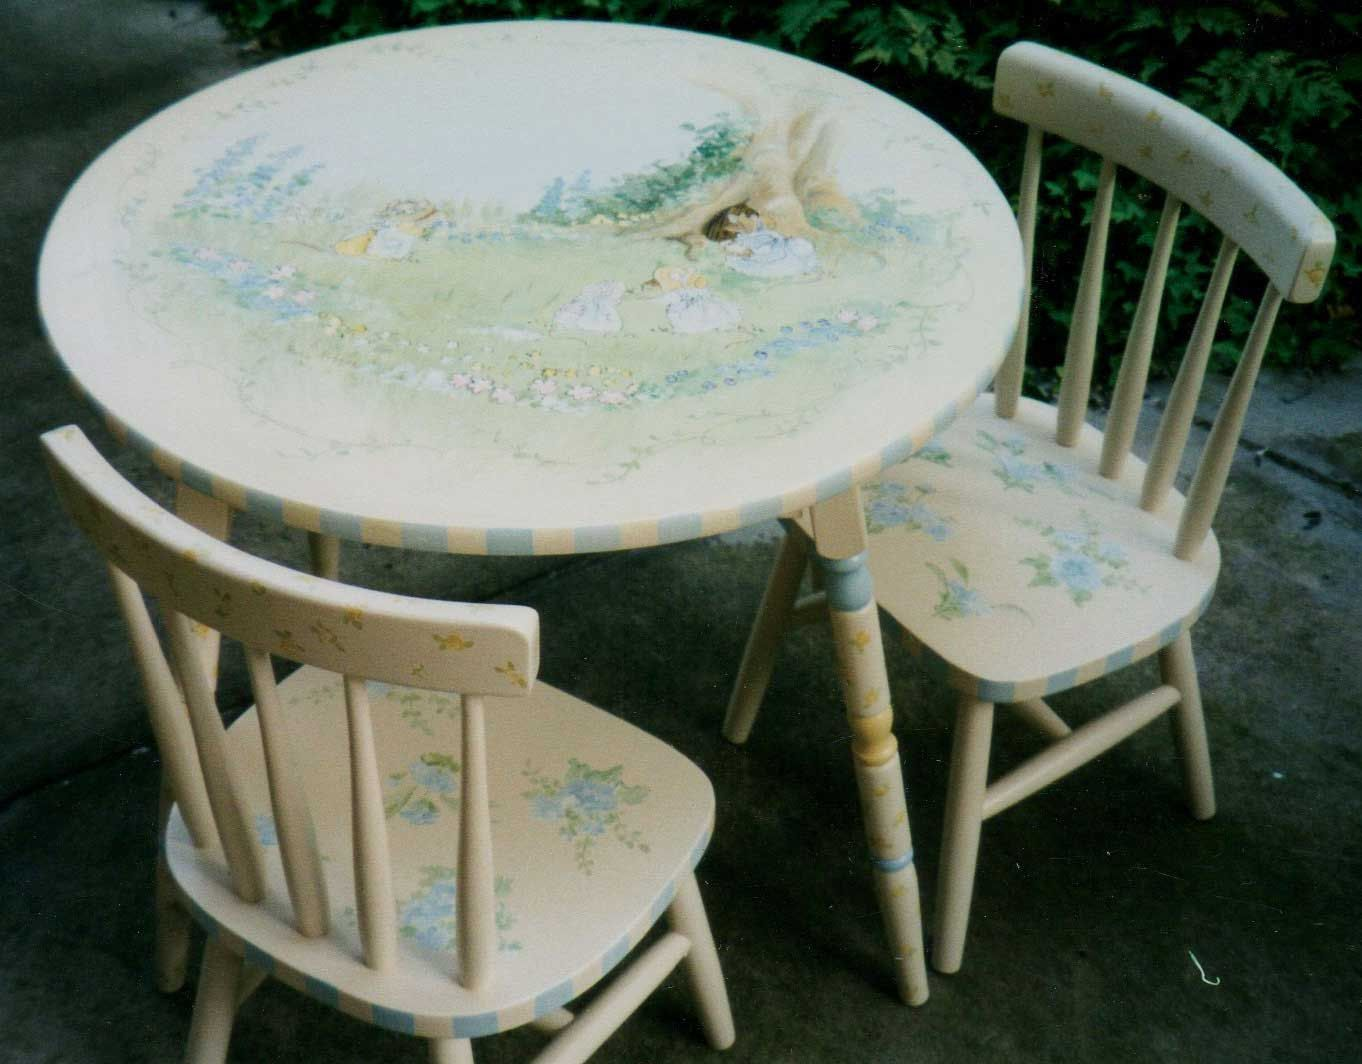 hand painted table set children\u0027s table and chairs child\u0027s painted table ... & hand painted table set children\u0027s table and chairs child\u0027s ...